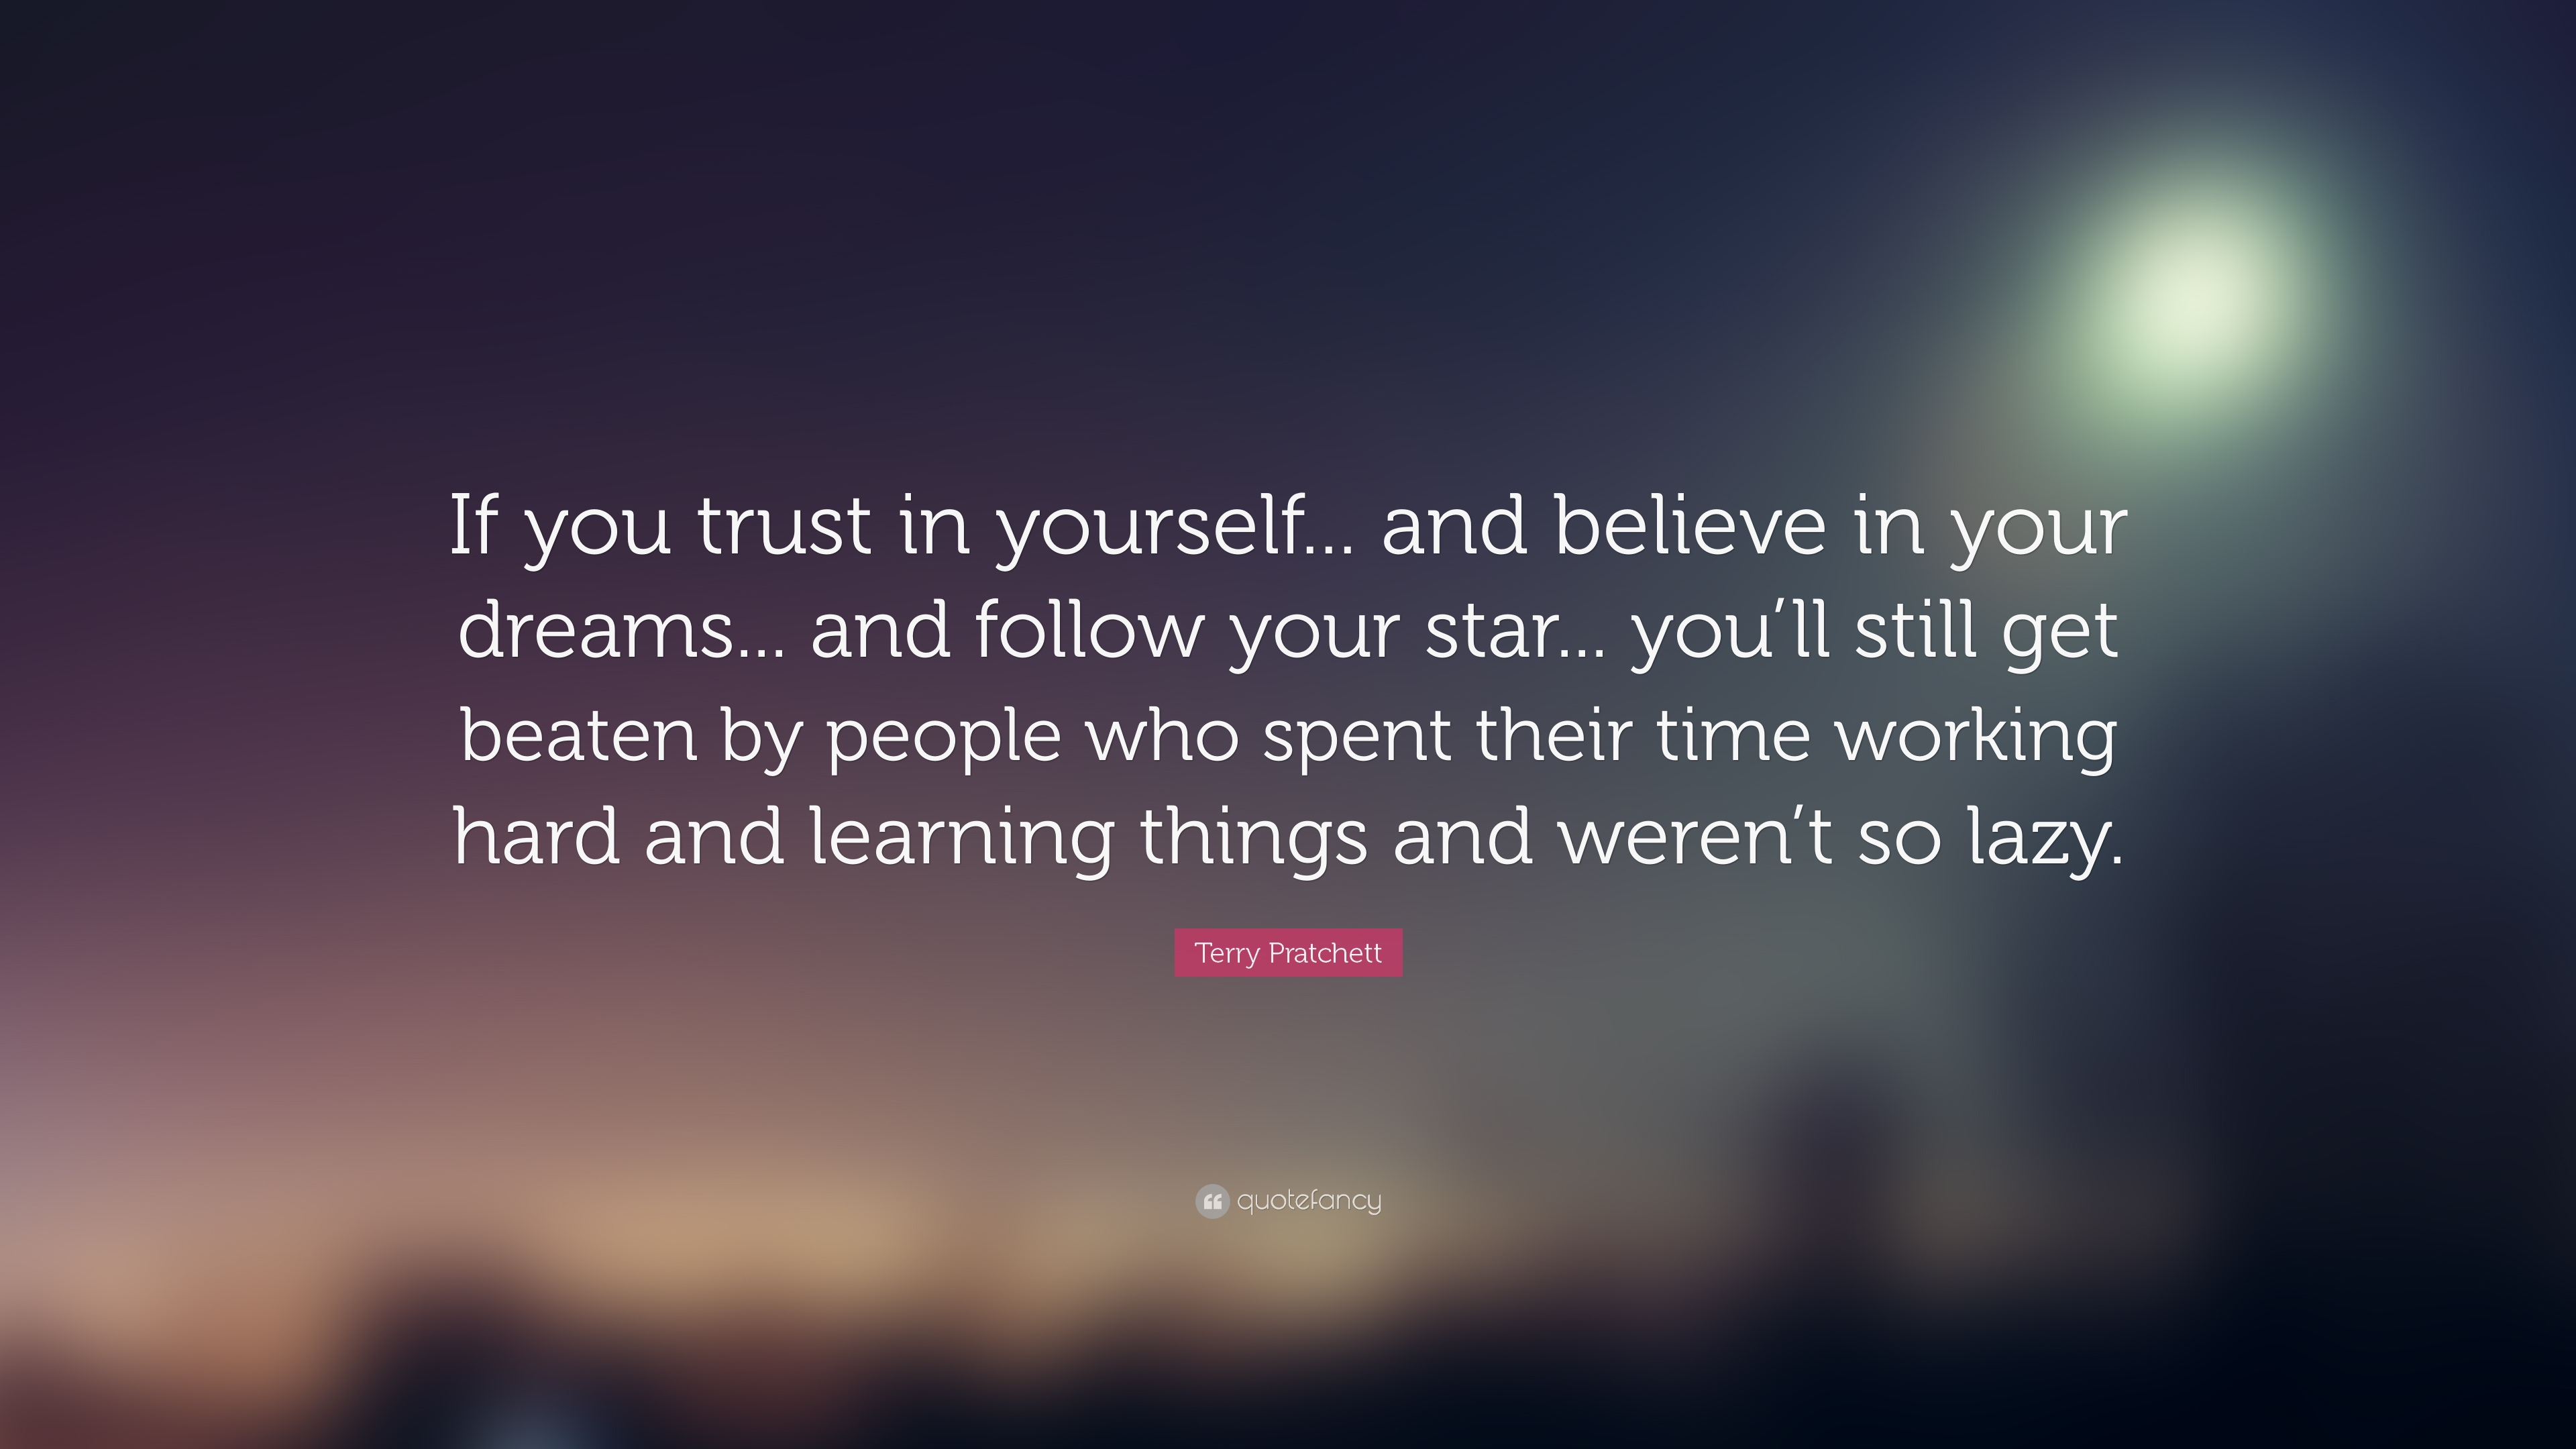 If you trust in yourself... and believe in your dreams... and follow your star... you'll still get beaten by people who spent their time working hard and learning and weren't so lazy.